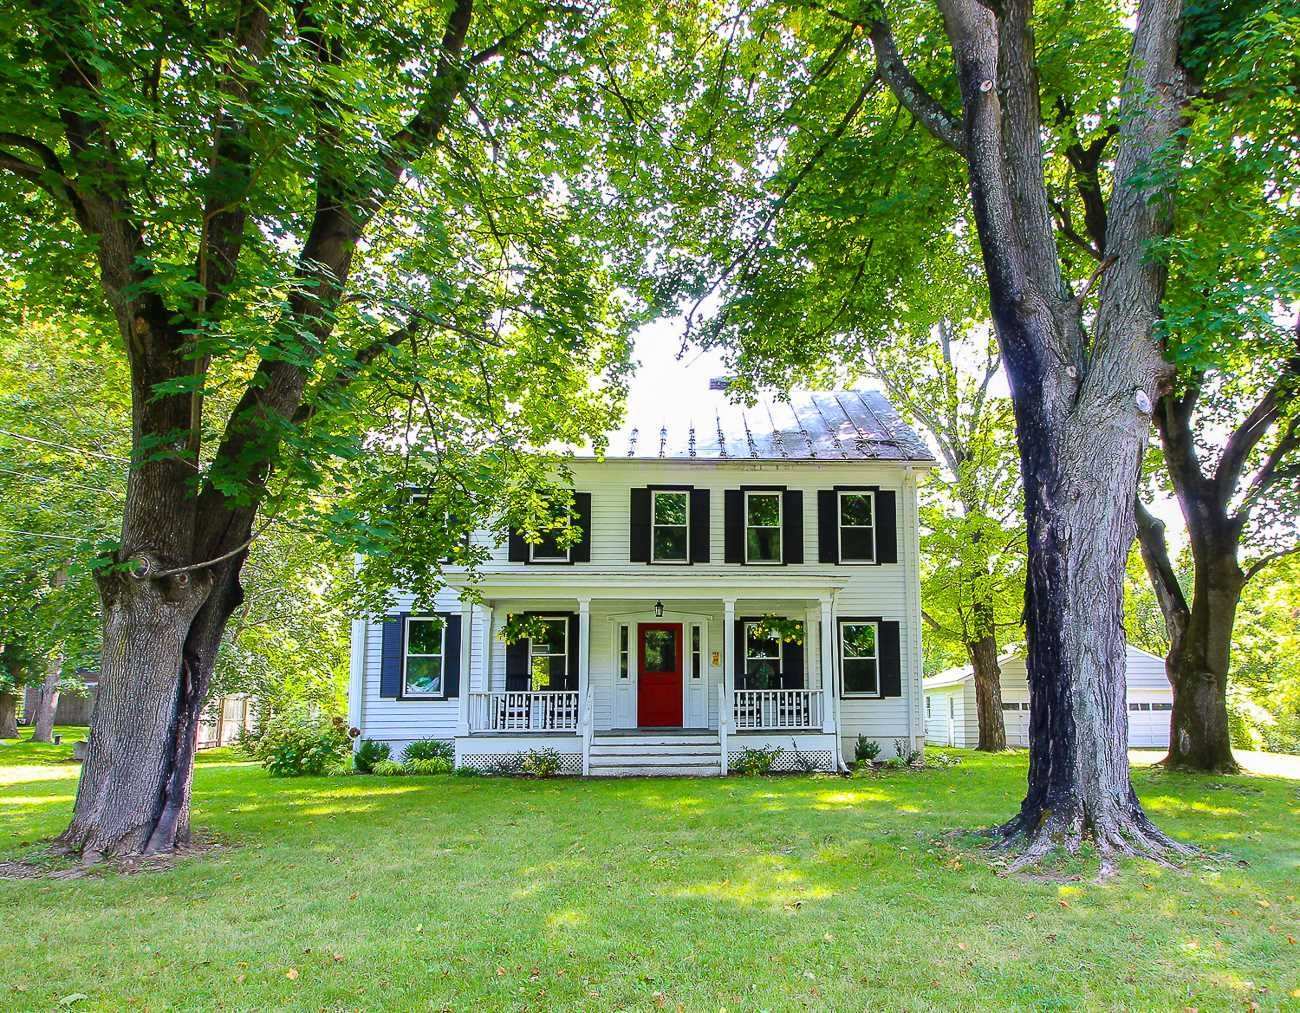 Single Family Home for Sale at 153 COUNTY ROUTE 19 153 COUNTY ROUTE 19 Livingston, New York 12534 United States